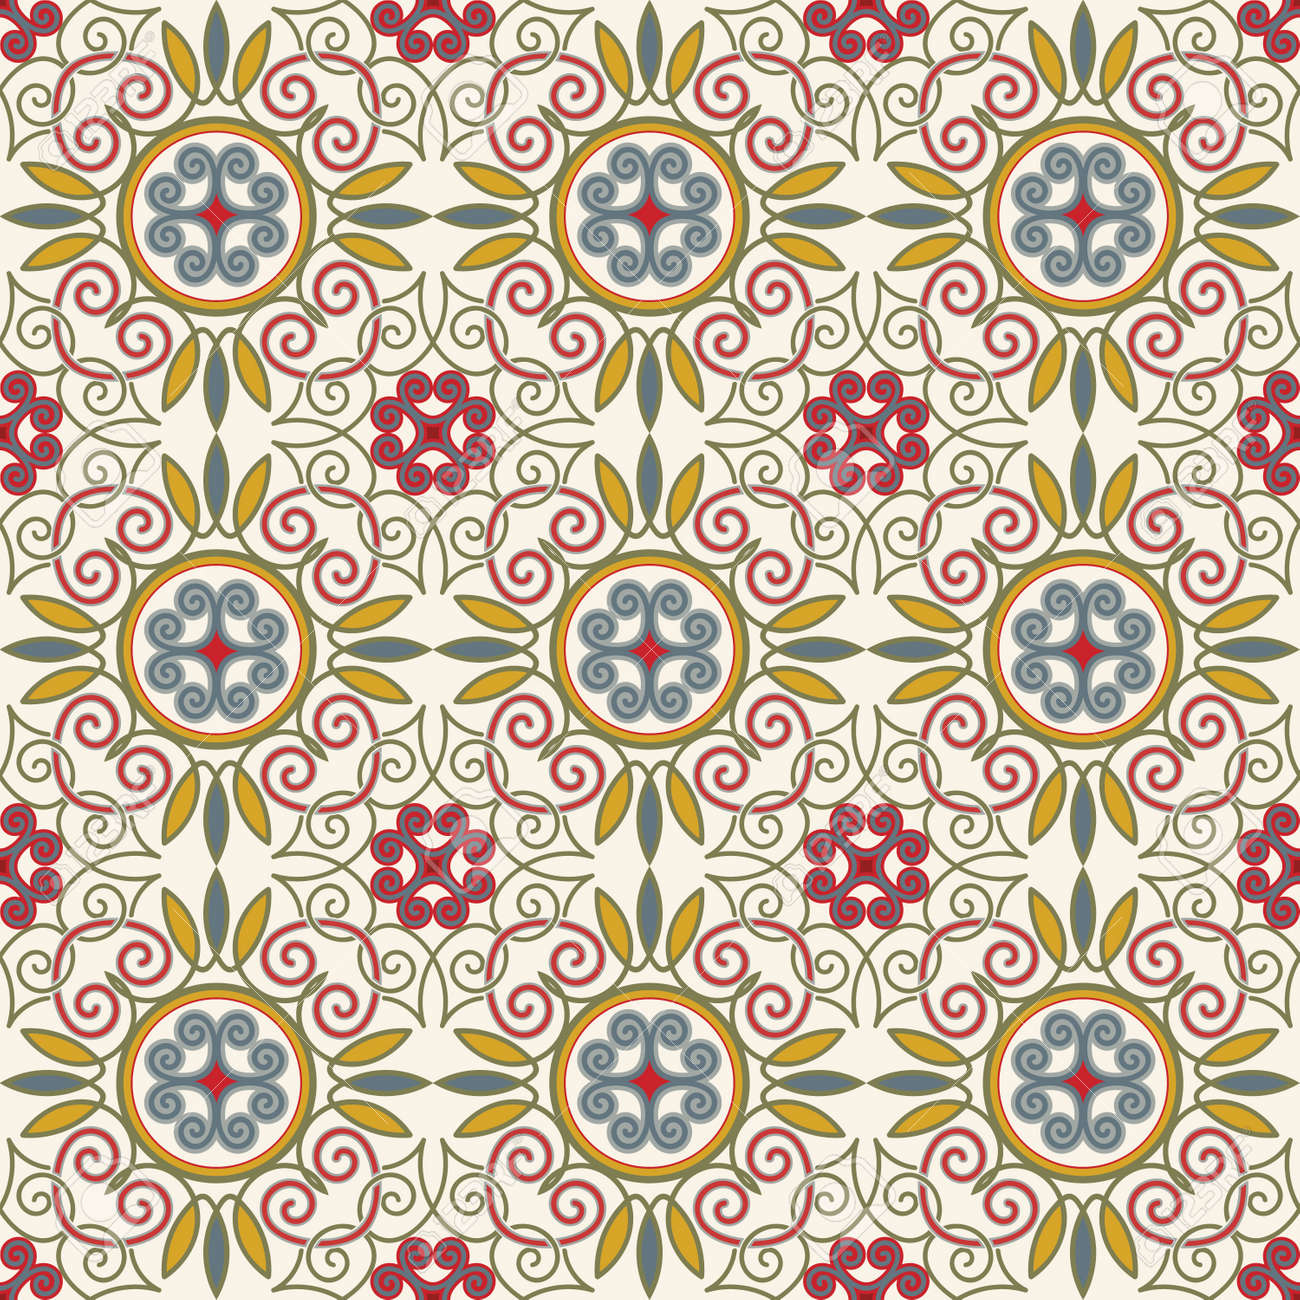 50672659 tile pattern from retro blue orange red beige style can be used for wallpaper surface textures cover